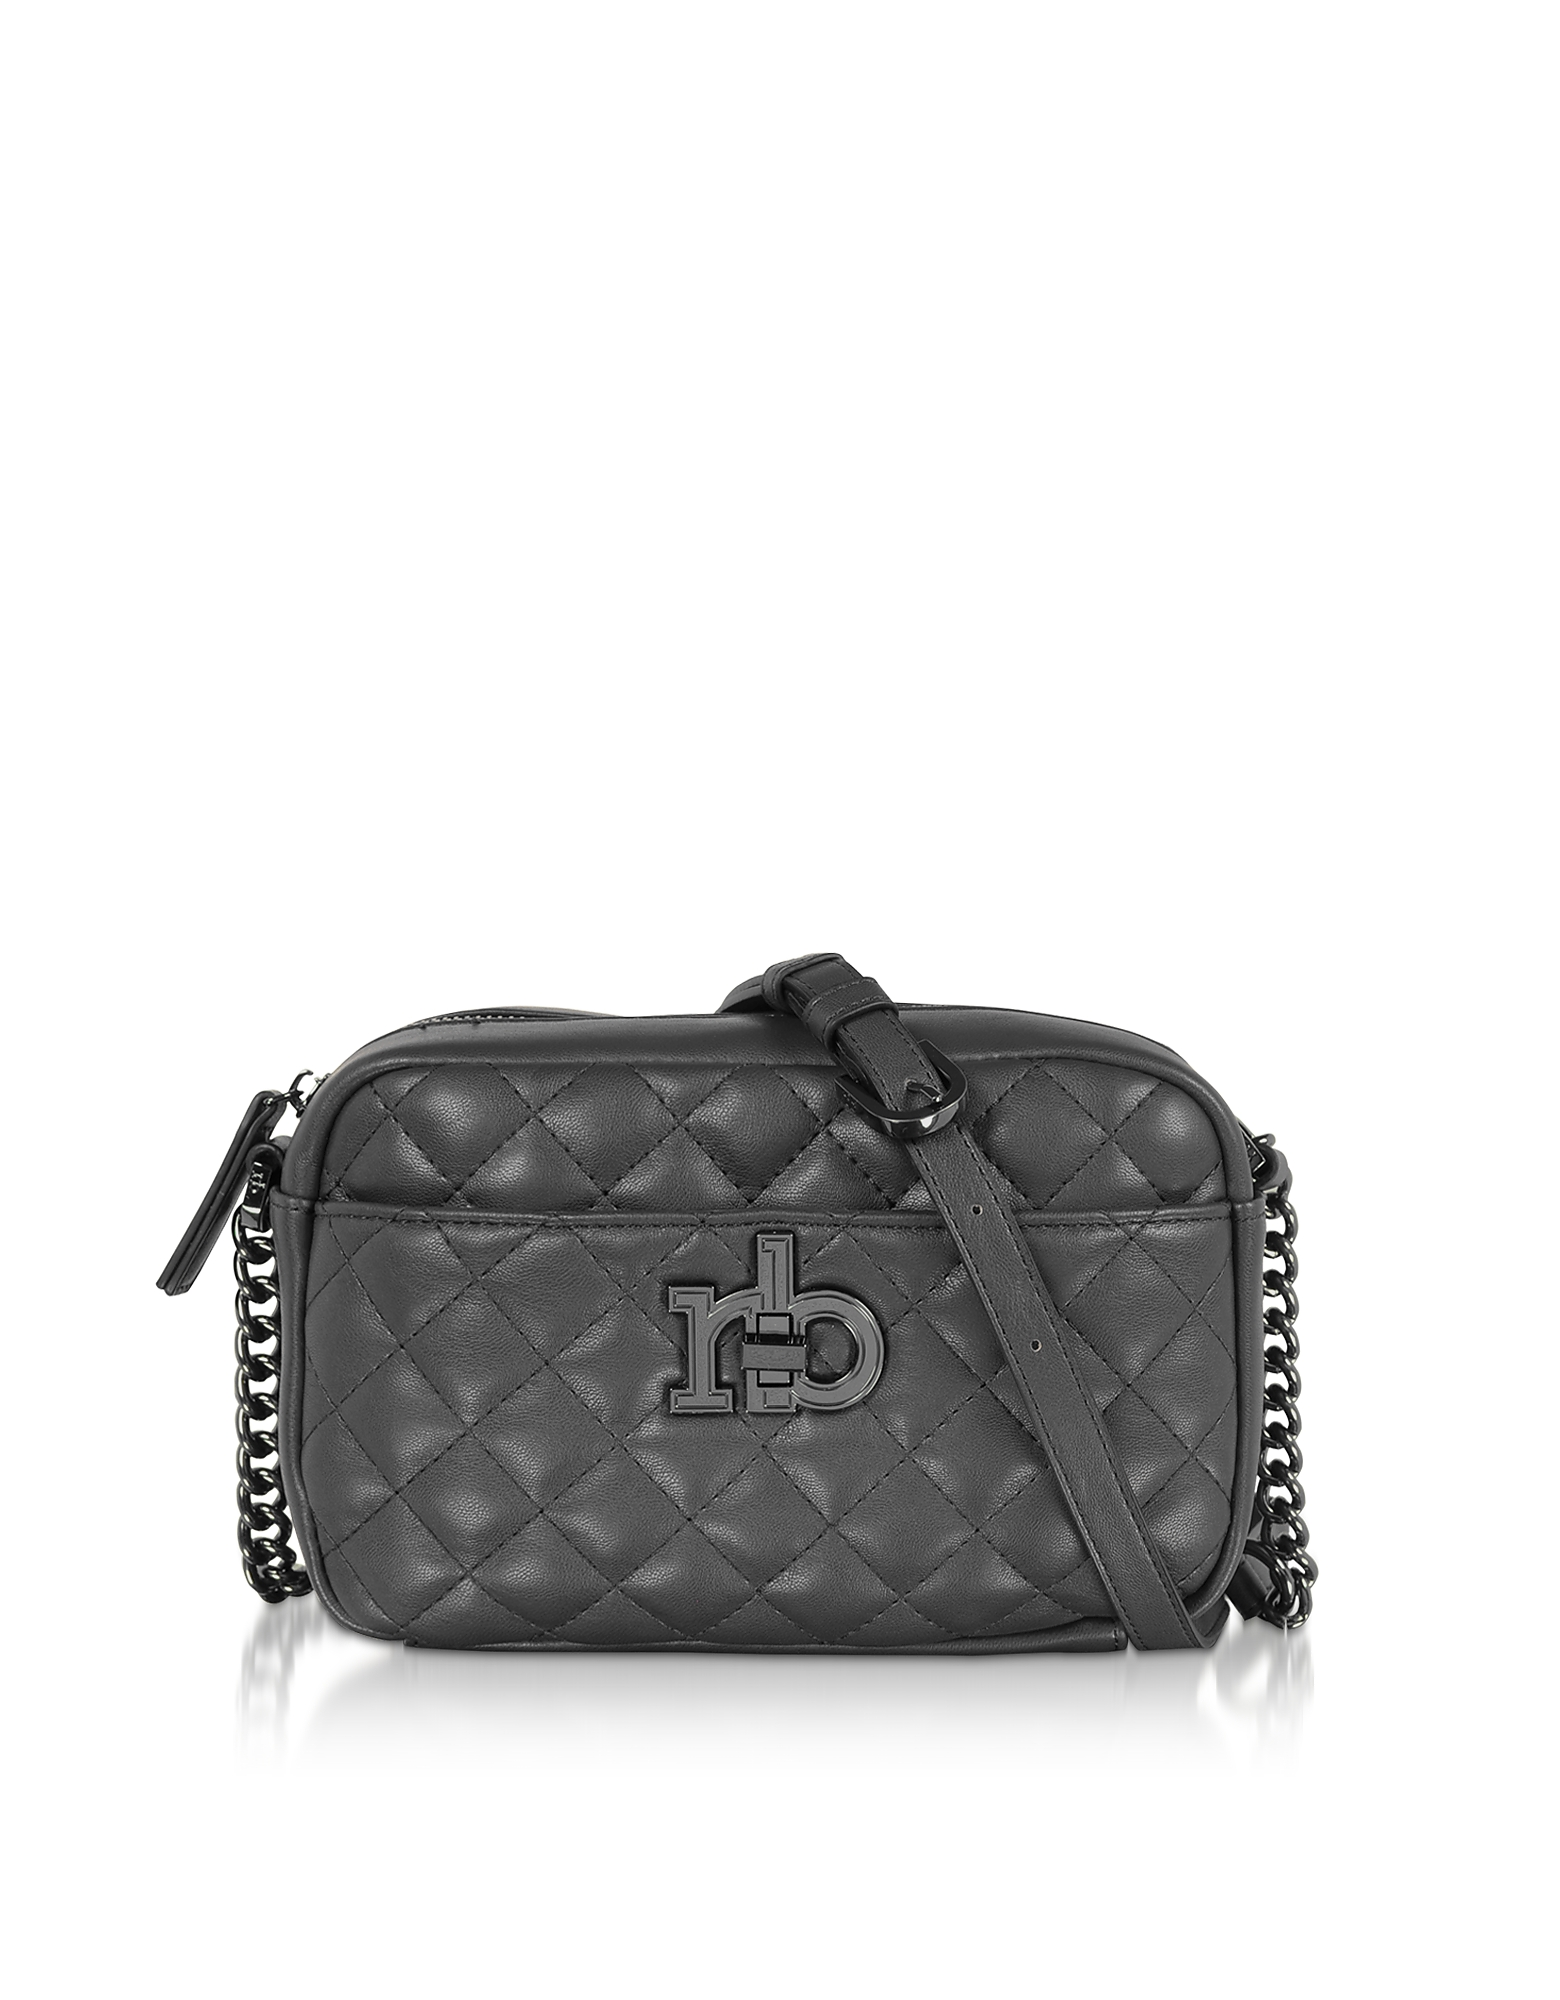 Roccobarocco Designer Handbags, RB Releve Quilted Eco Leather Camera Bag